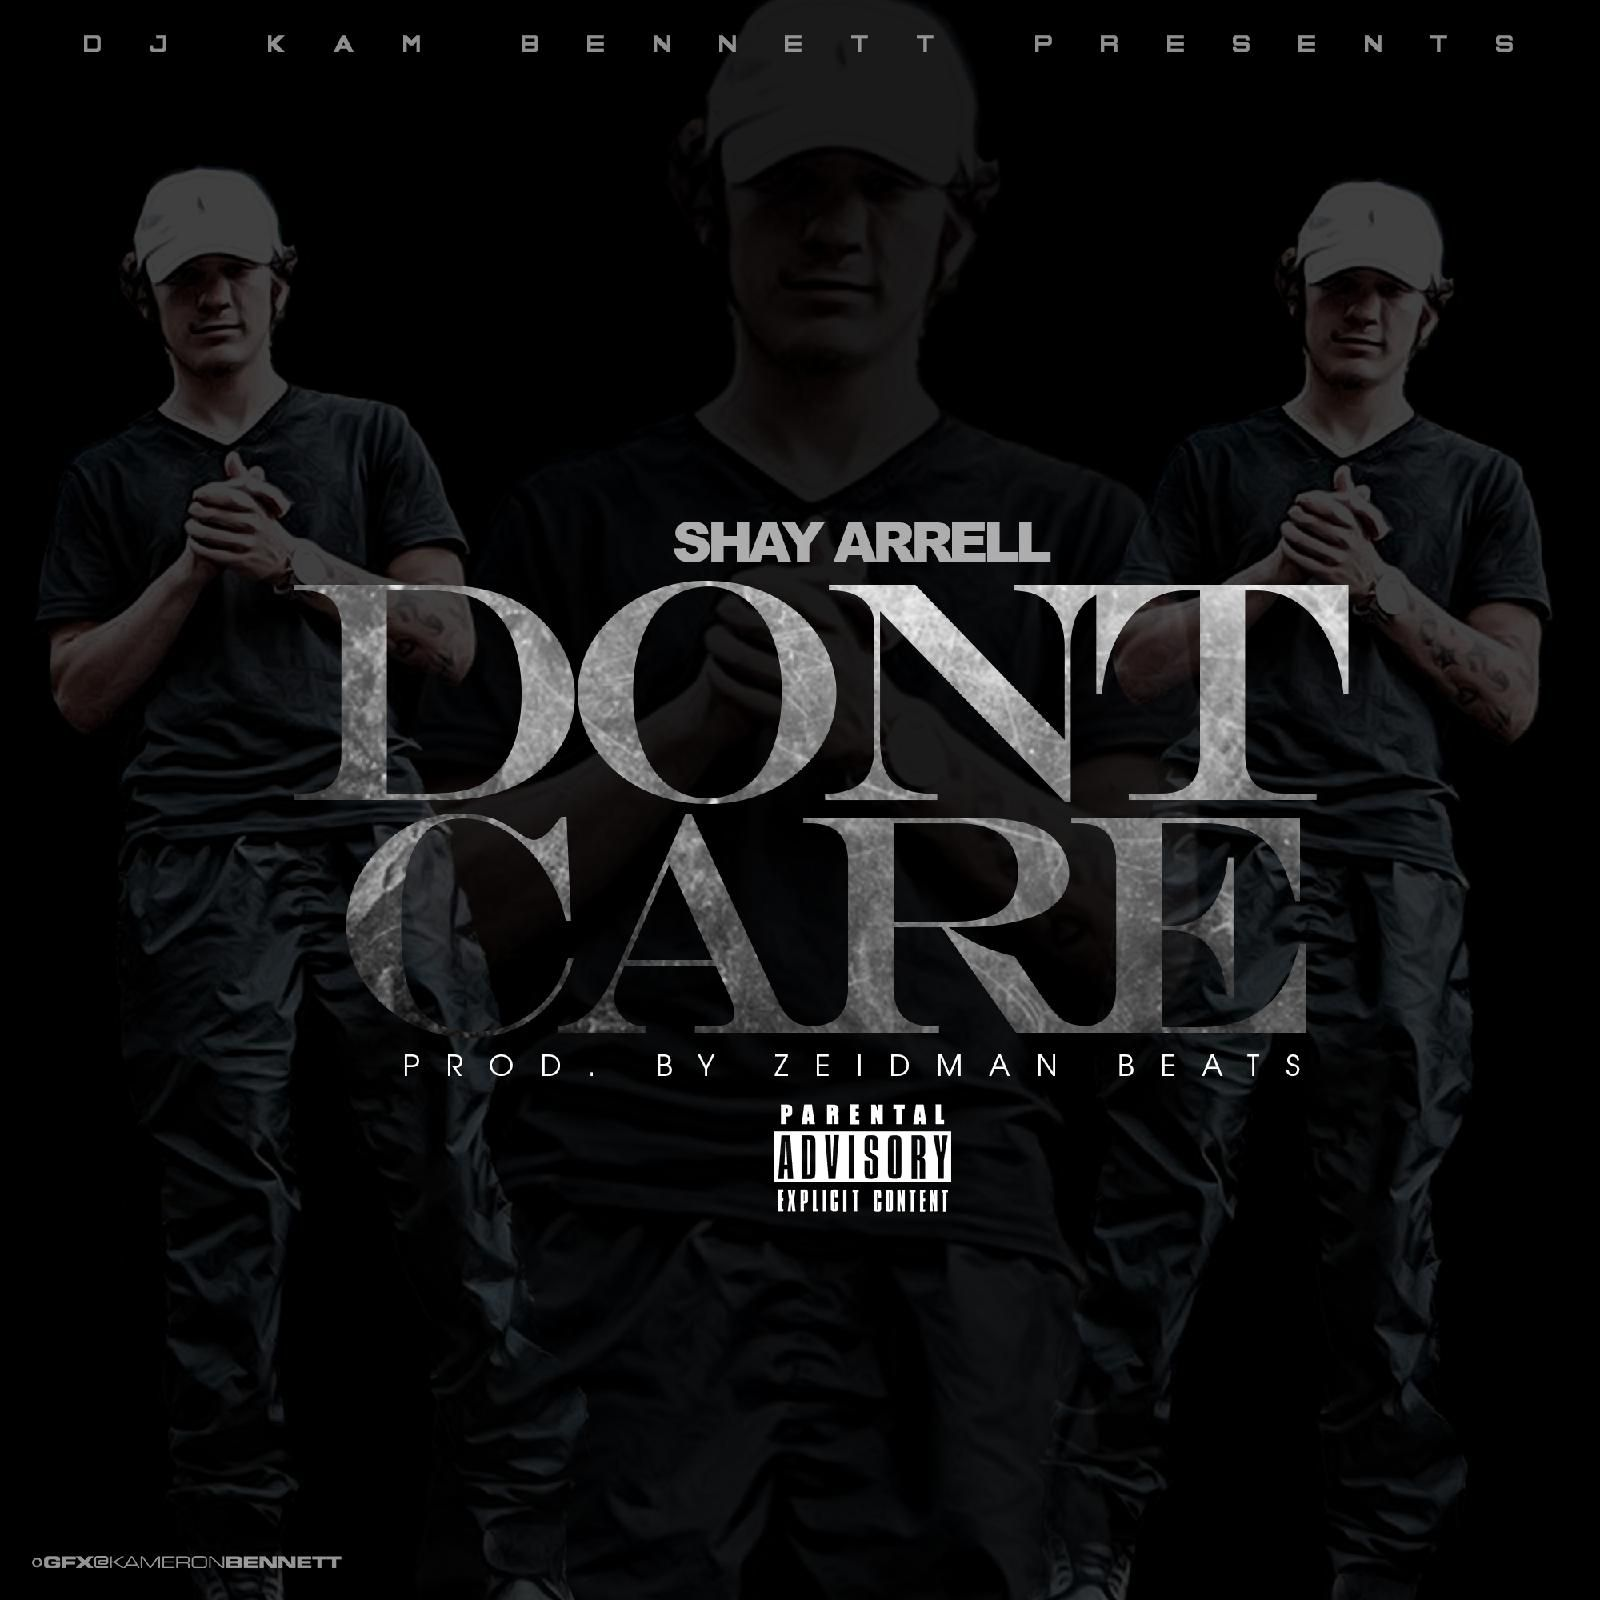 """Who Cares Song Dwnload: Shay Arrell - """"Don't Care"""" - Download"""